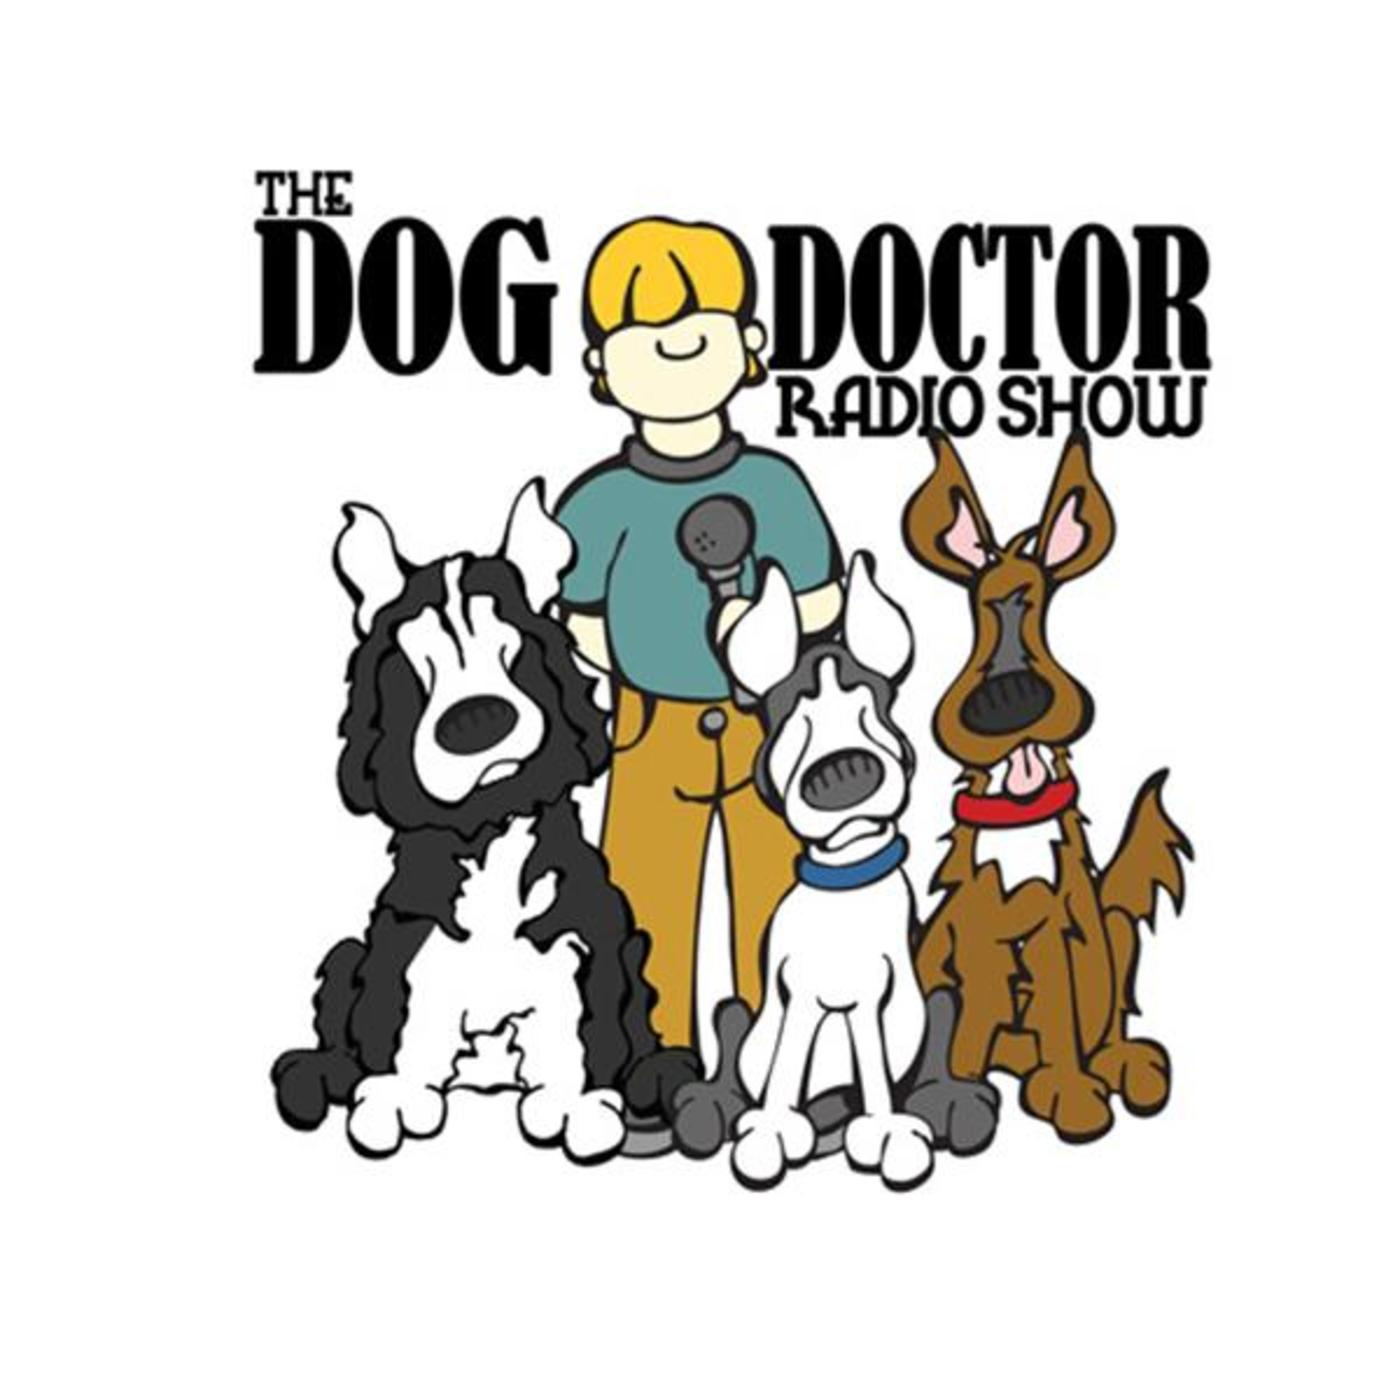 The Dog Doctor